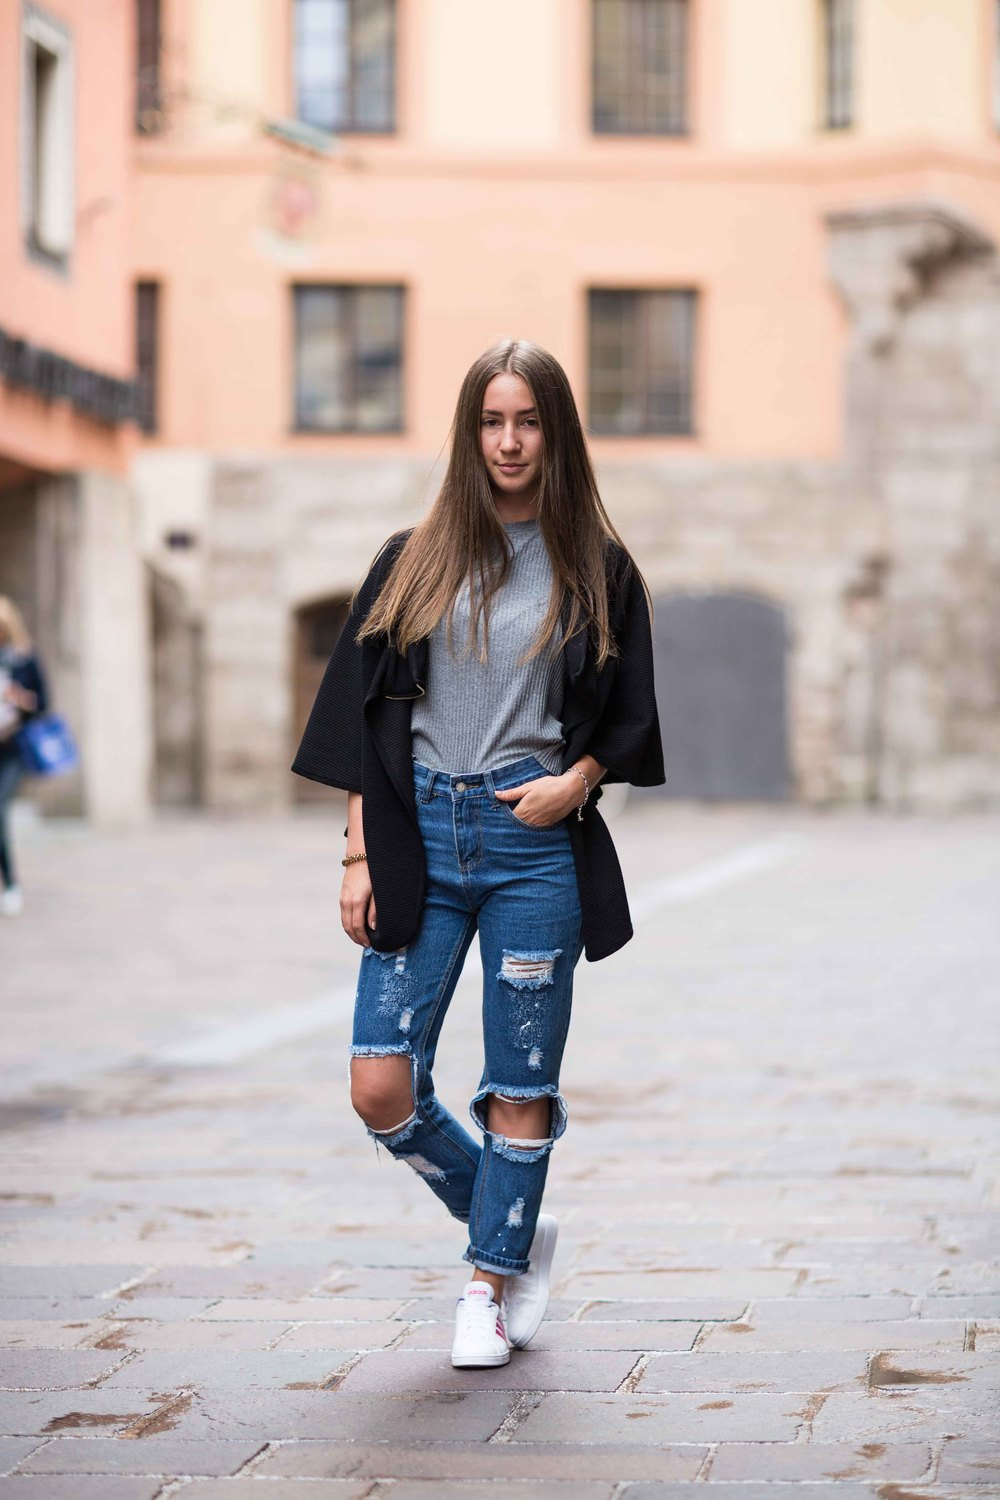 street-style-fashion-blog-innsbruck-michelle